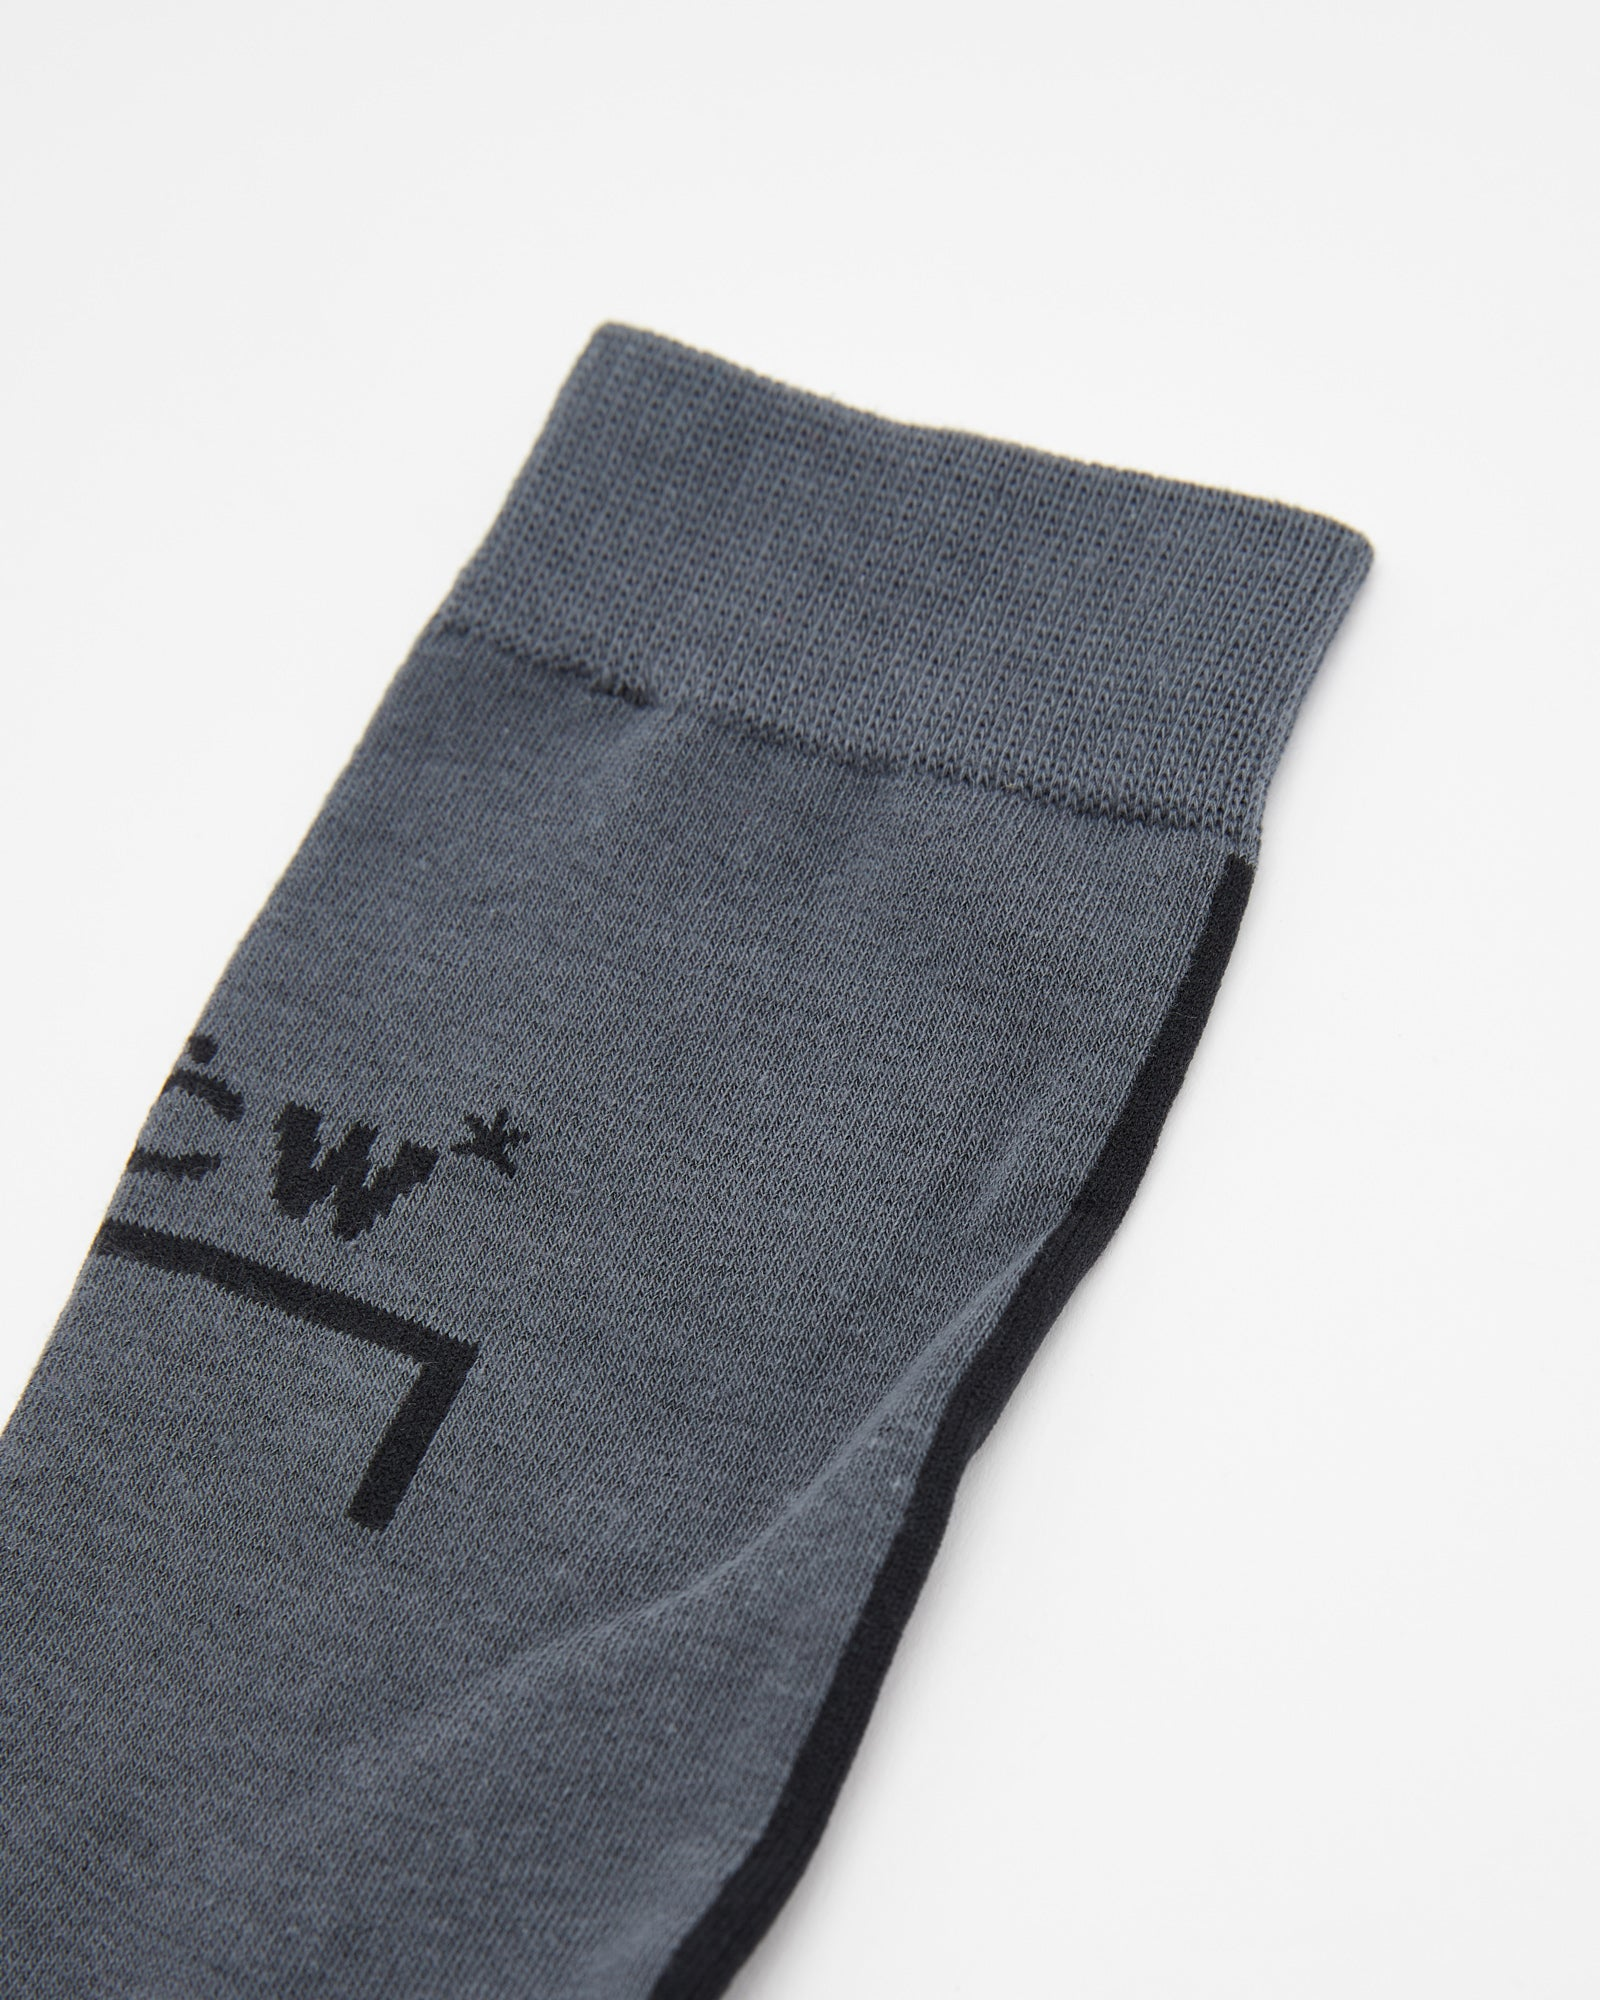 Block Logo Sock in Charcoal